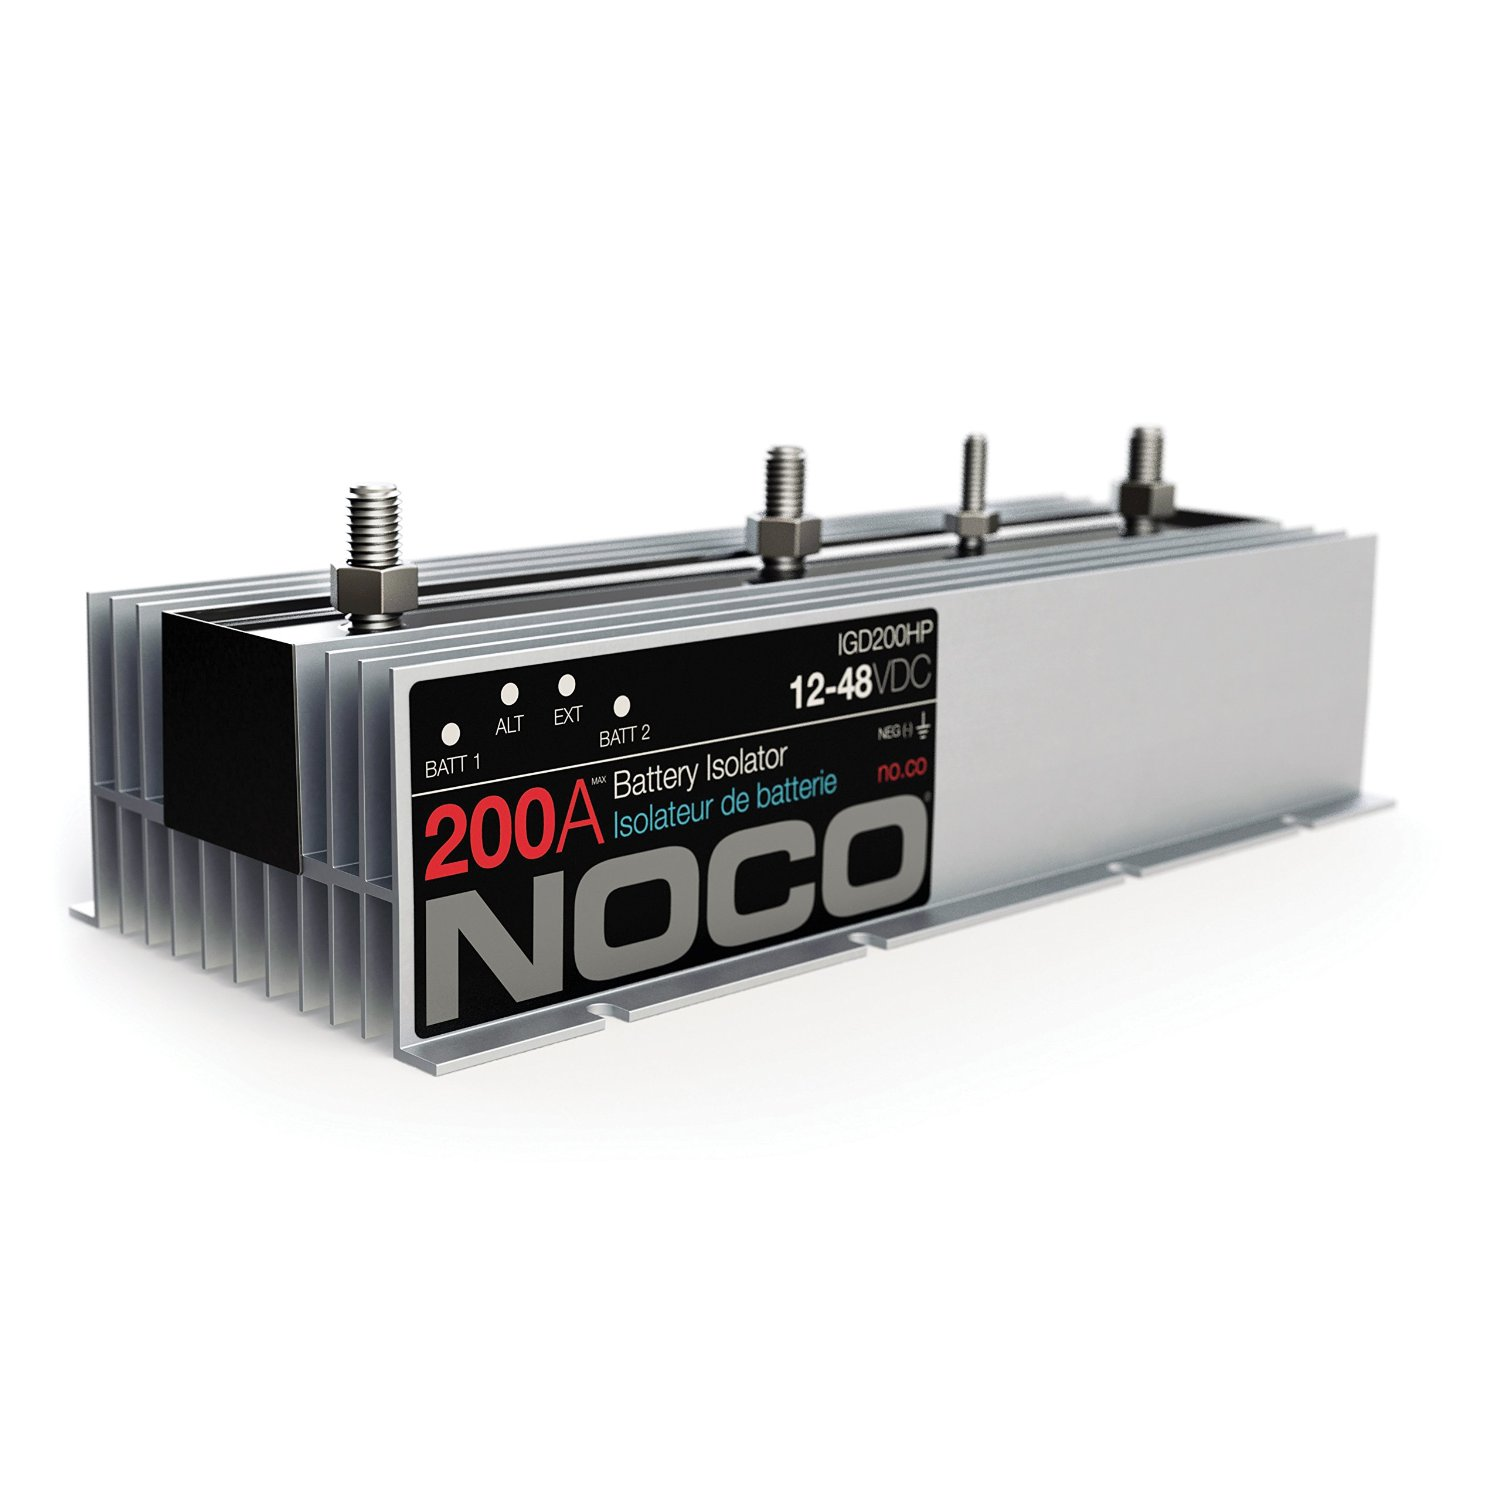 Noco Battery Isolator Wiring Diagram Igd200hp Complete Cole Hersee High Performance 200 Amp Rv Parts Rh Rvpartsexpress Com Dual